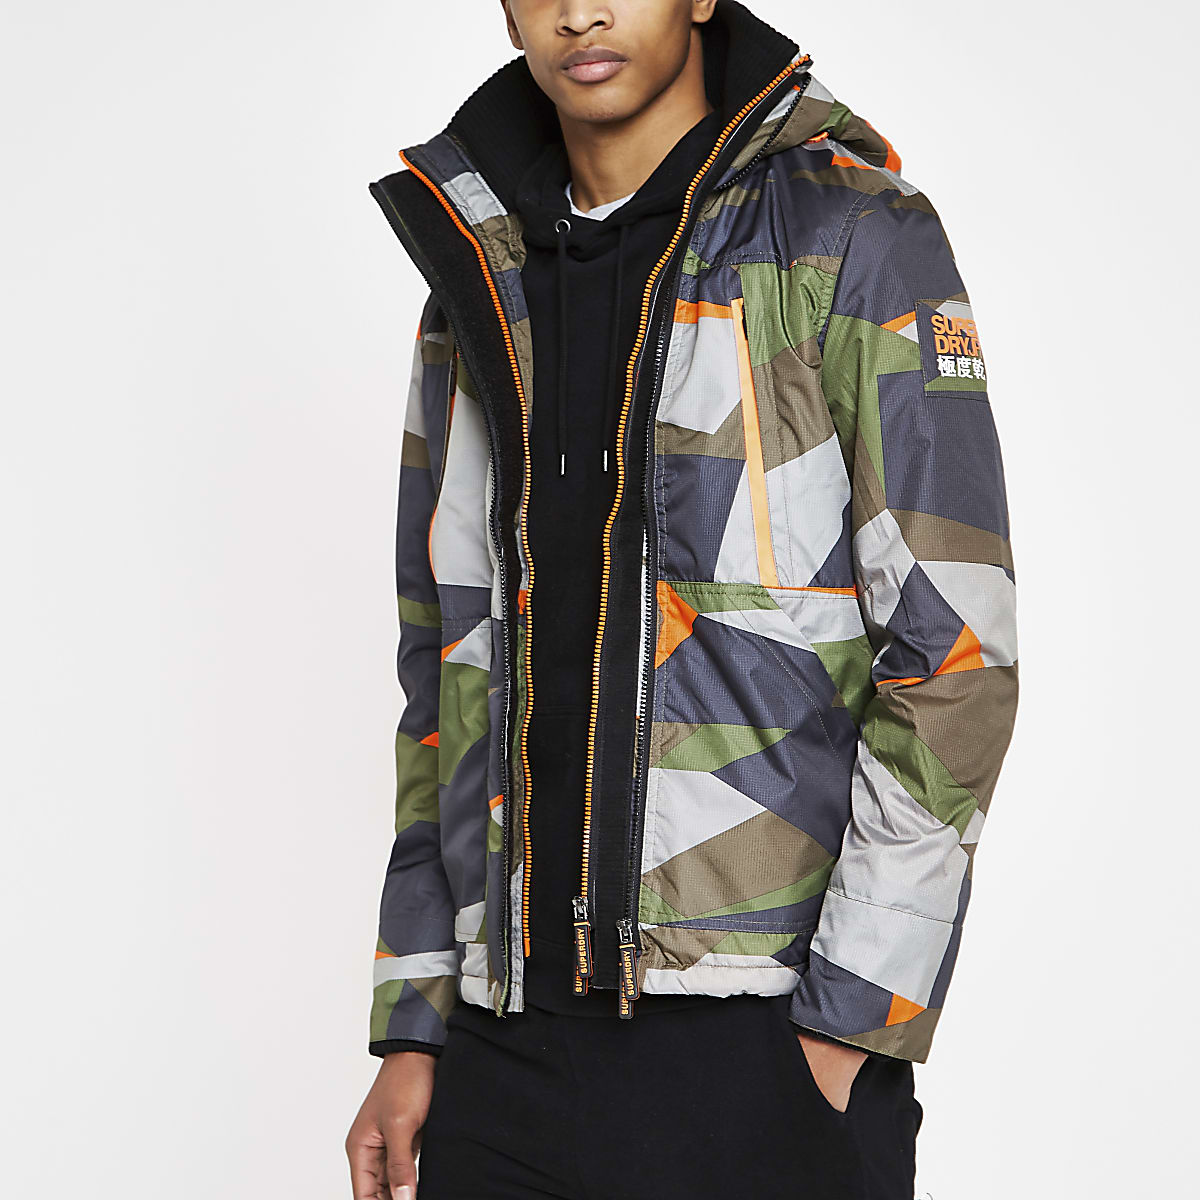 cheap for sale wholesale online brand new Superdry green hooded polar jacket